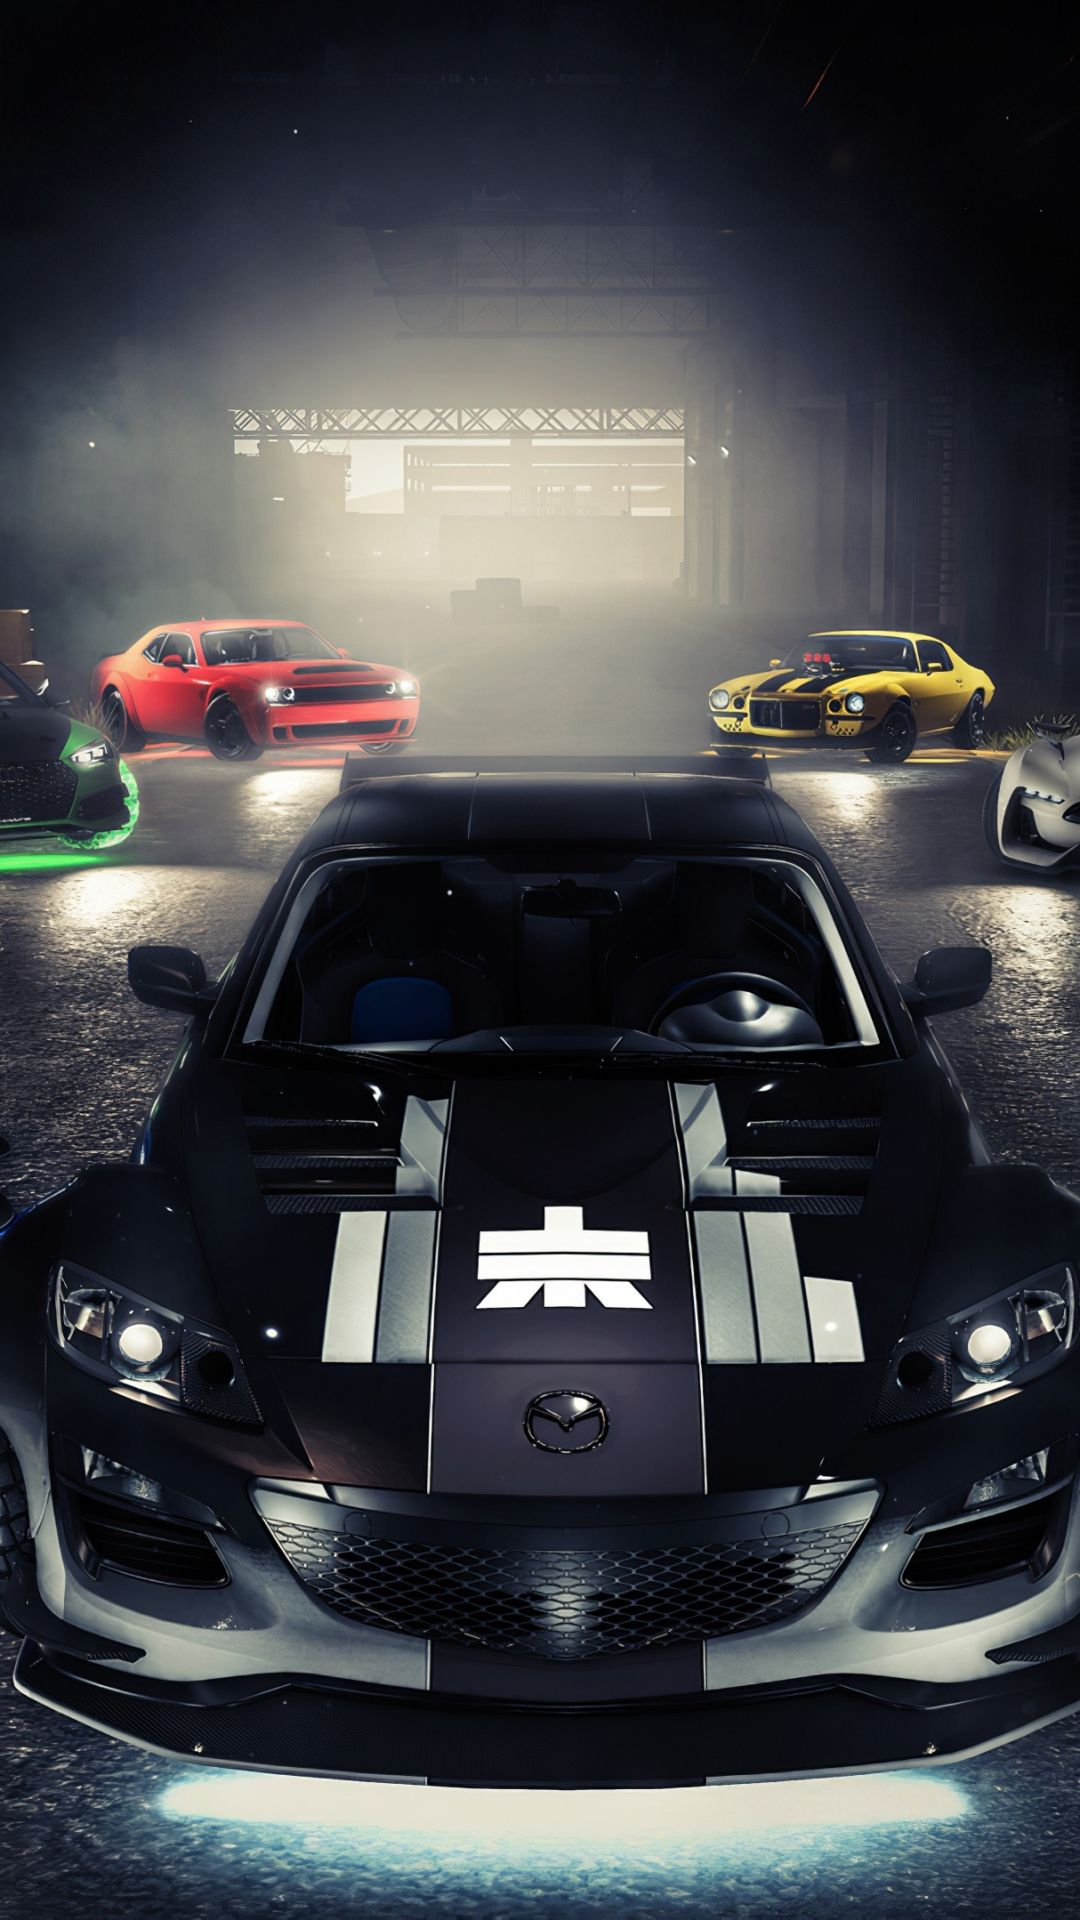 1080x1920 Game Cars The Crew 2 Wallpaper Luxury Background Background Images Need For Speed Cars